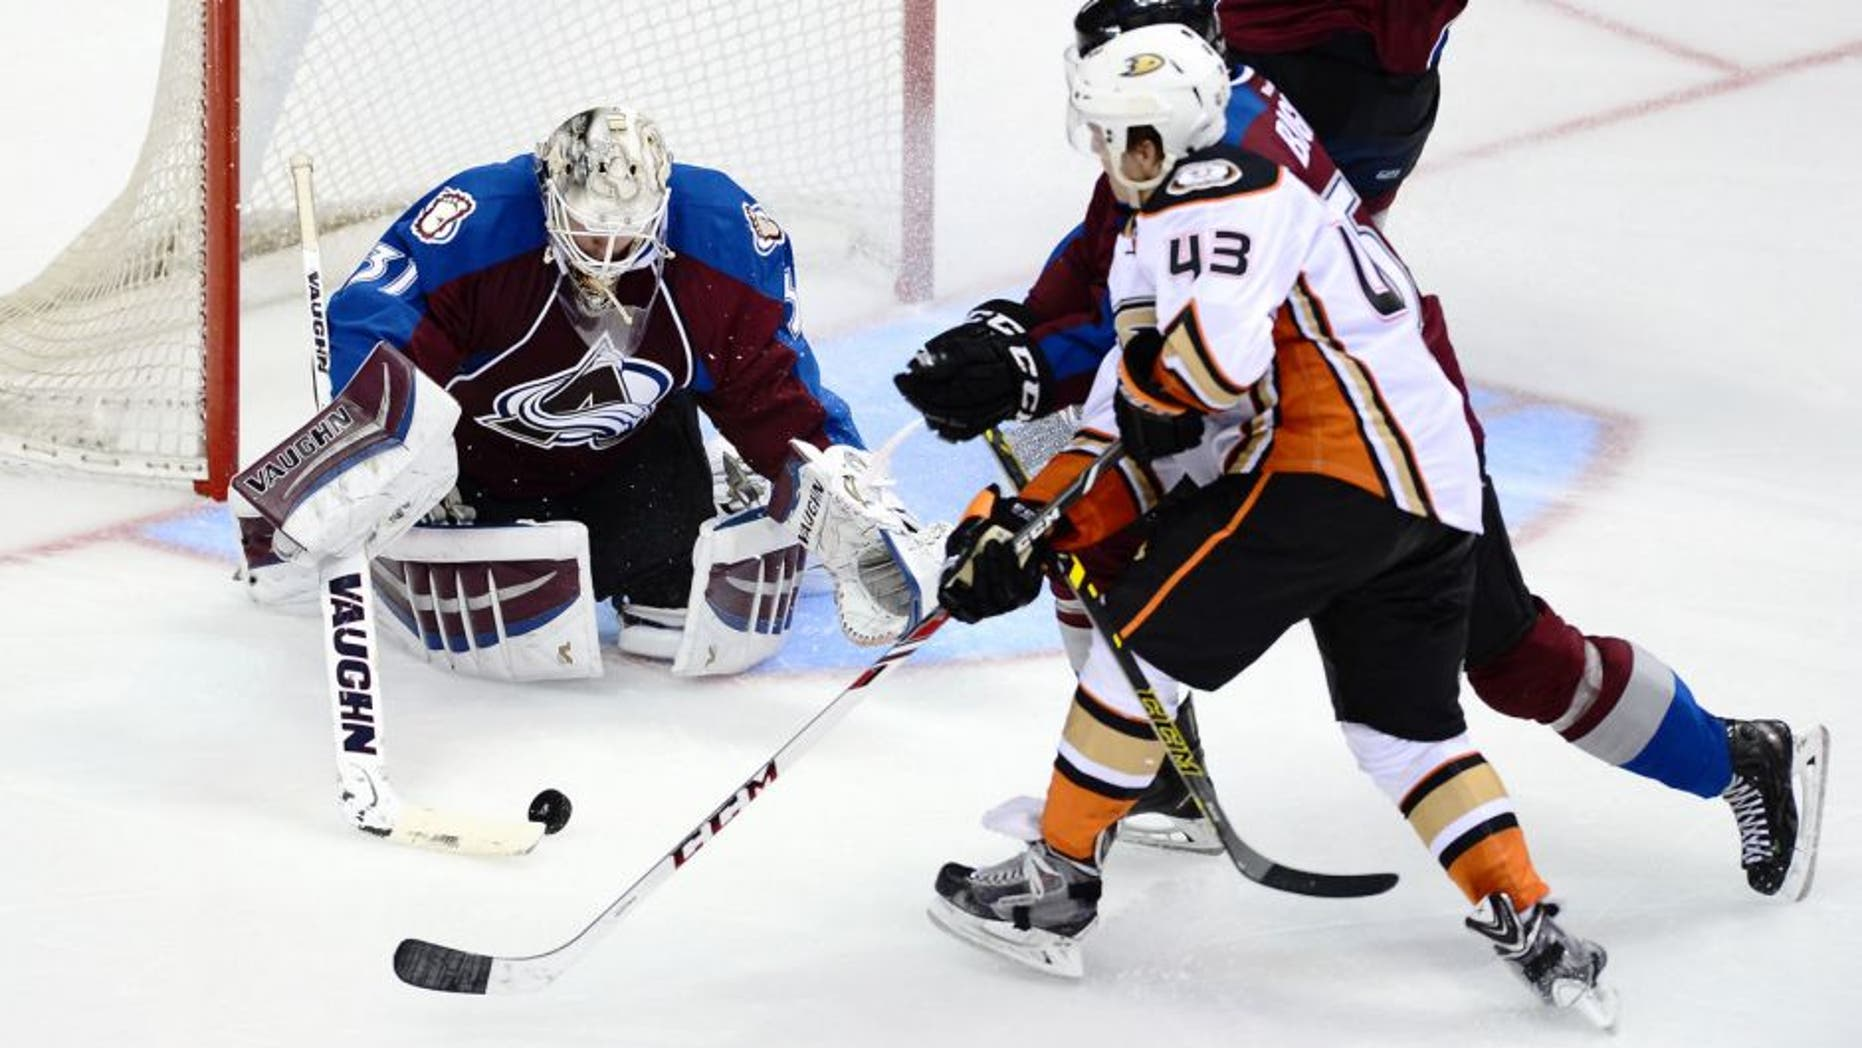 Sep 22, 2014; Denver, CO, USA; Colorado Avalanche goalie Calvin Pickard (31) makes a save on Anaheim Ducks left wing Max Friberg (43) as defenseman Chris Bigras (57) assists in defense in the second period at Pepsi Center. Mandatory Credit: Ron Chenoy-USA TODAY Sports